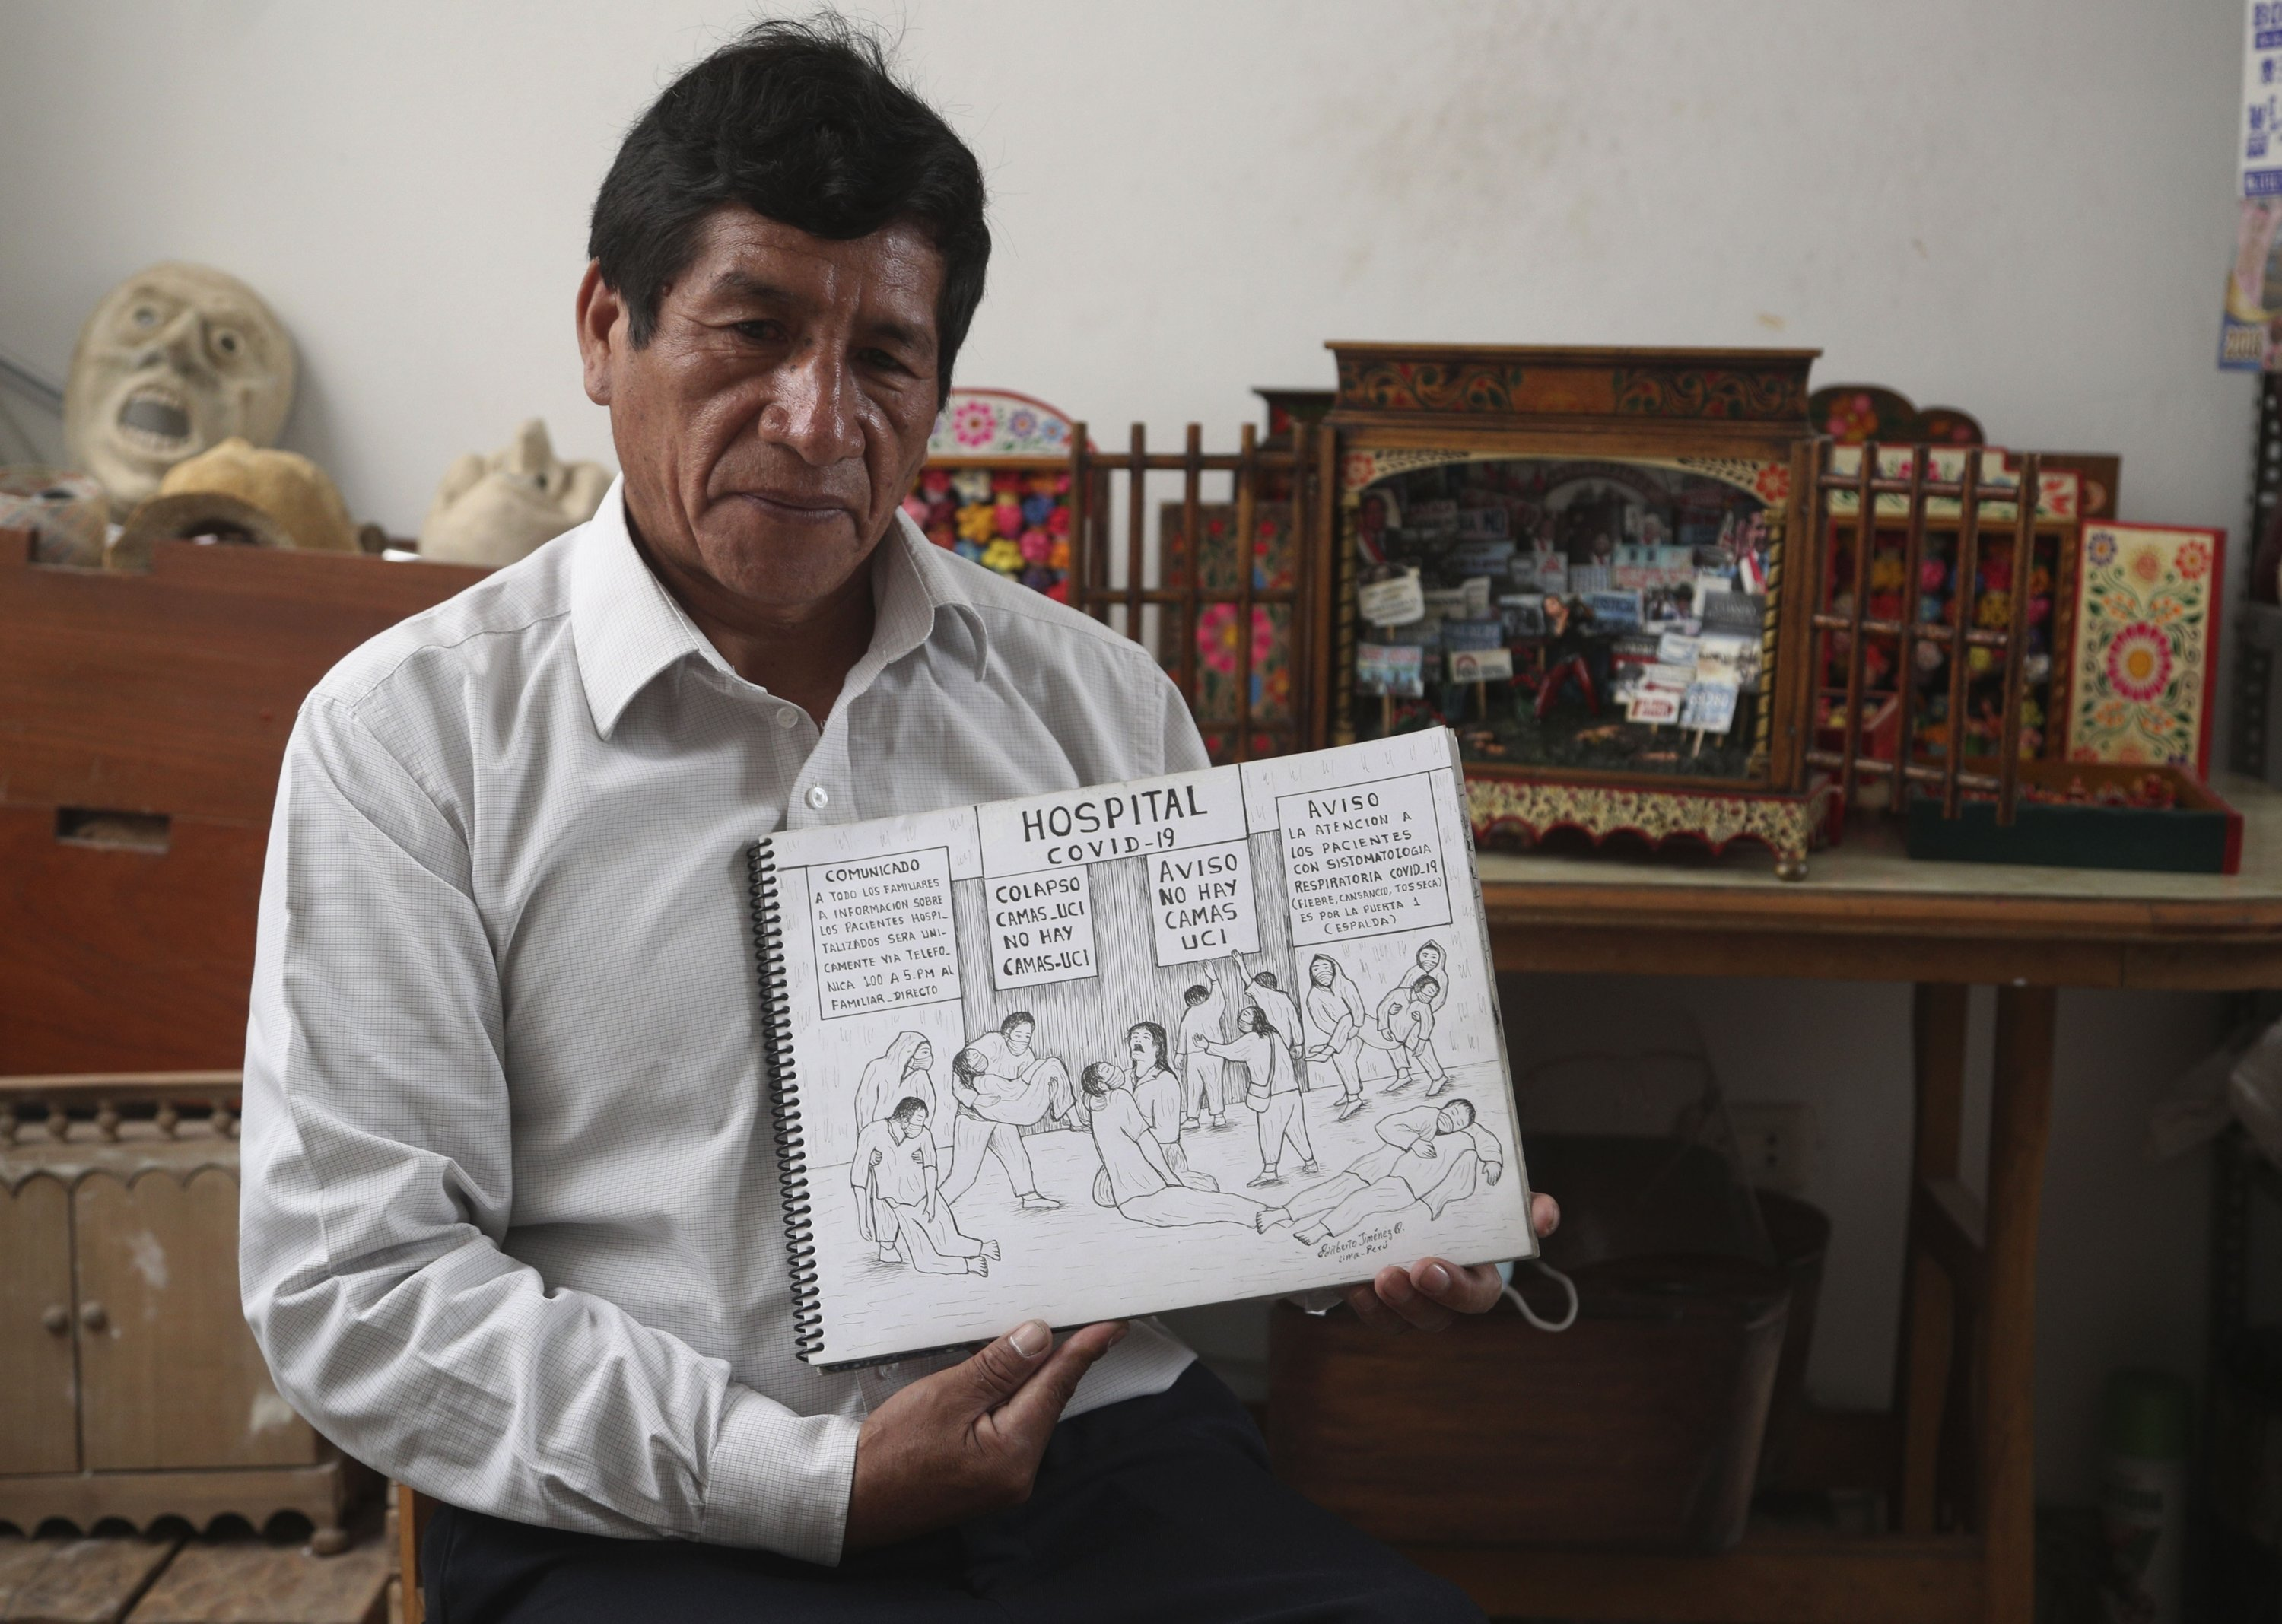 Edilberto Jimenez poses with one of his drawings at his home in San Juan de Lurigancho, on the outskirts of Lima, Peru, May 20, 2021. (AP Photo)